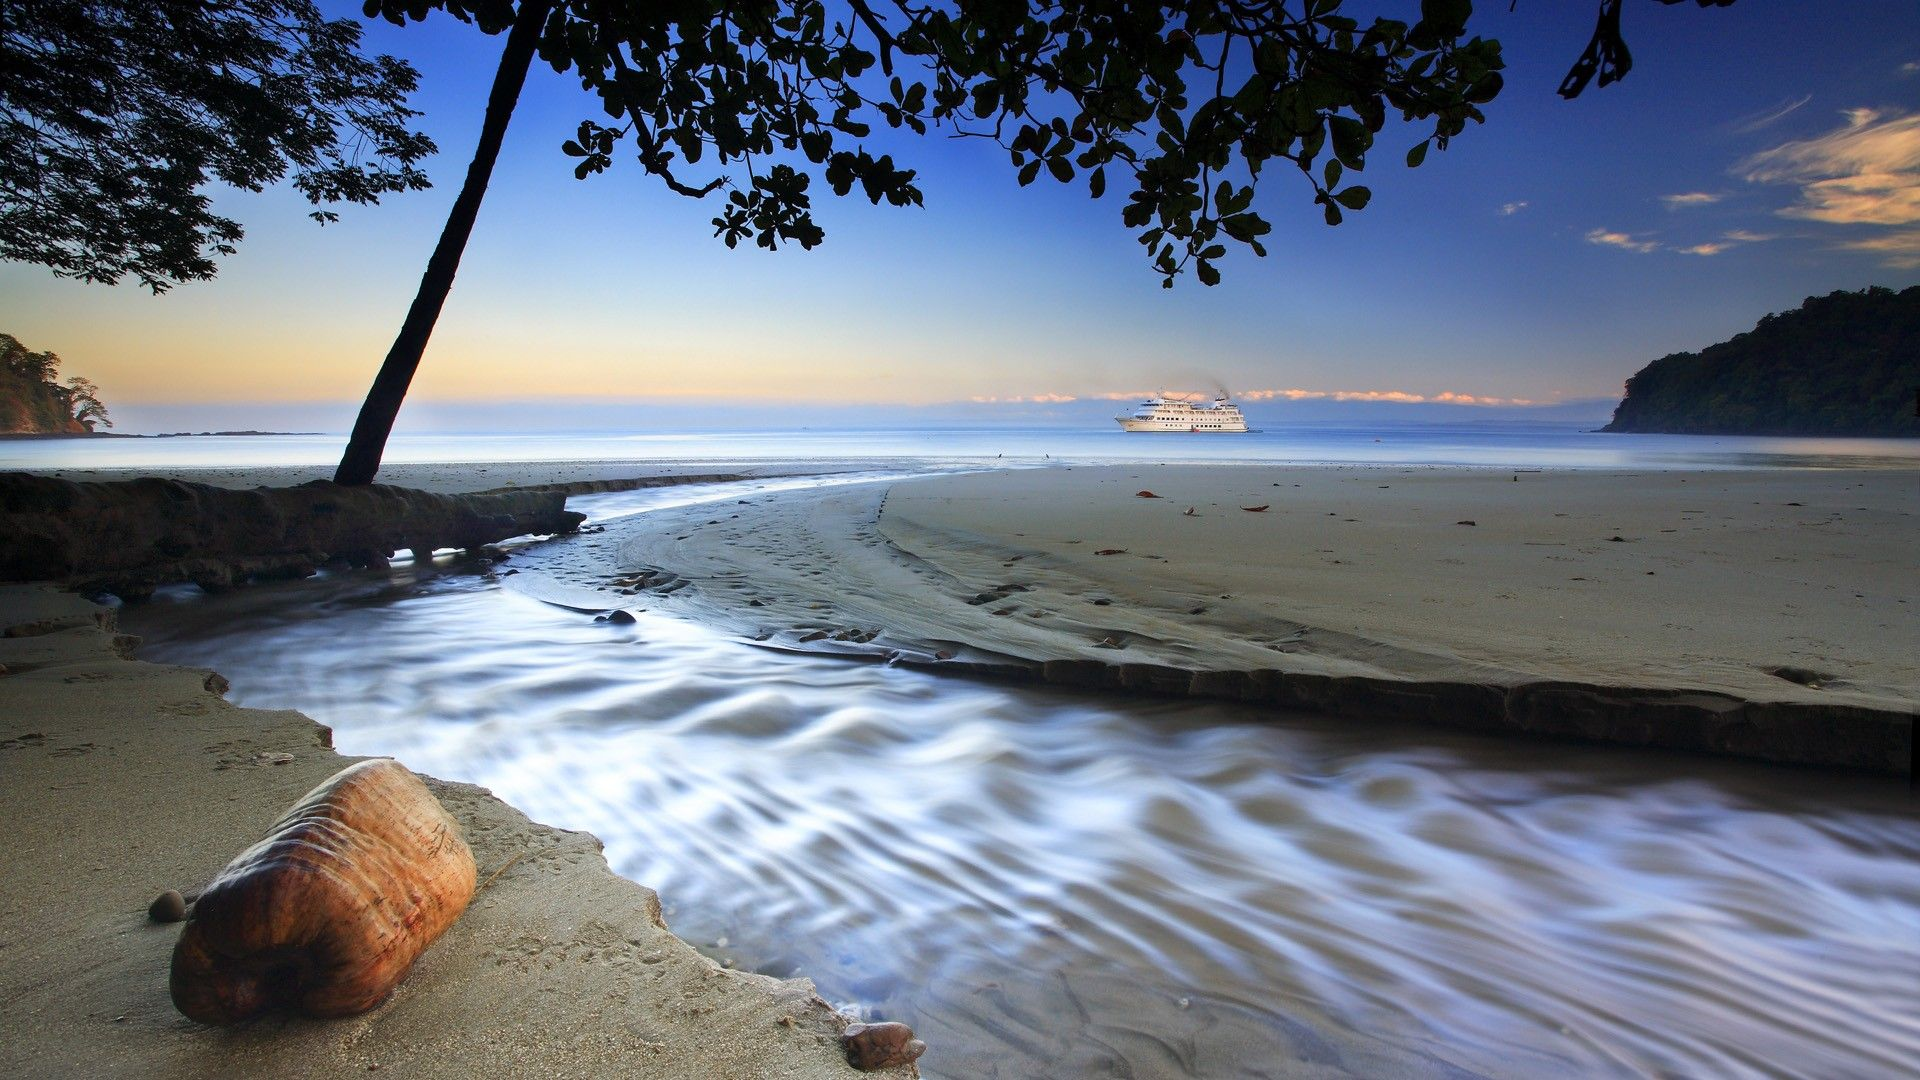 Fond ecran paysage nature plage hd punta arena costa rica for Photo nature hd gratuit